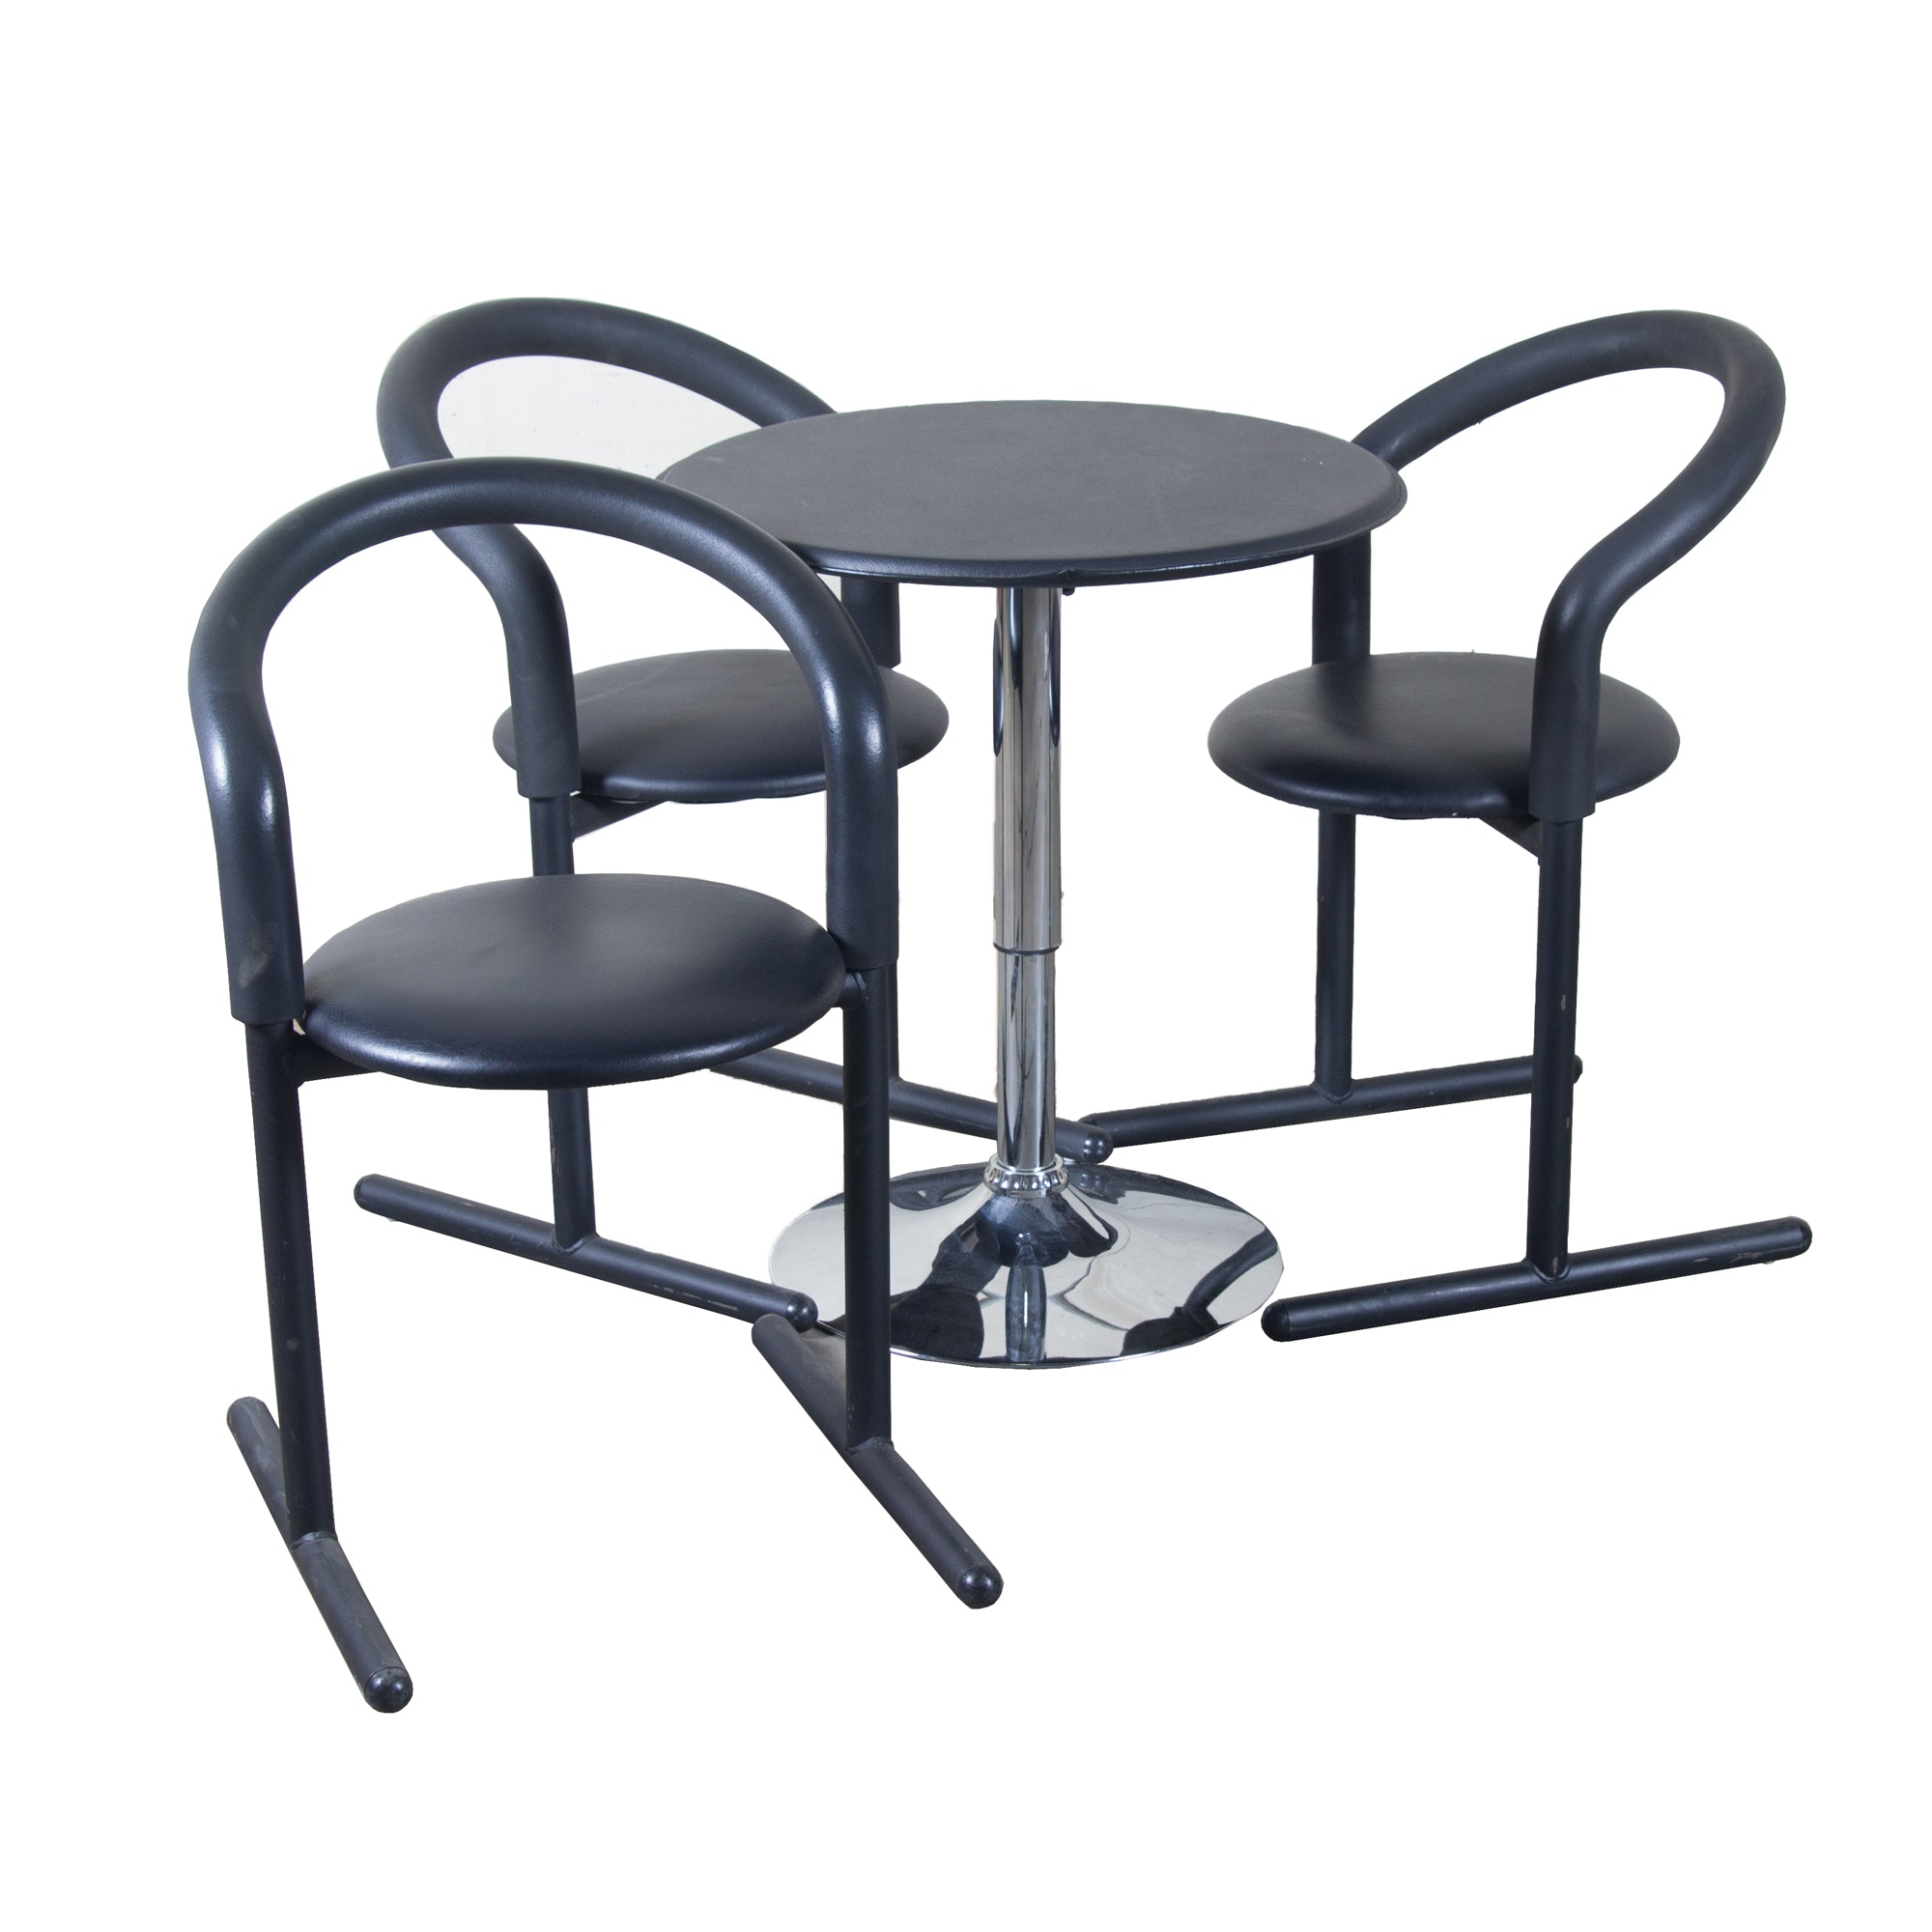 Modern Black Metal and Vinyl Table With Stools